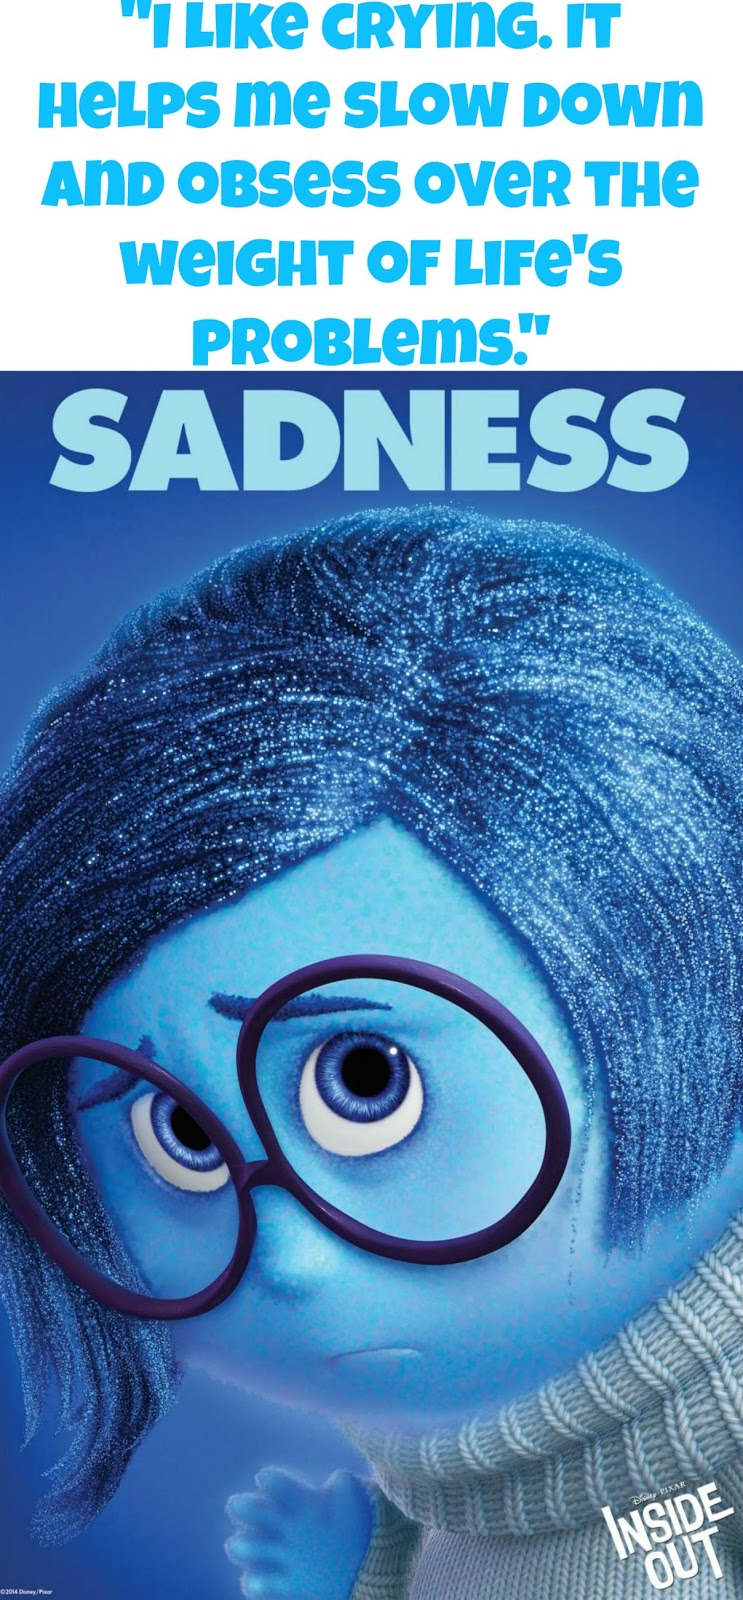 Disney Sisters Inside Out Movie Quotes And Activity Pages Insideout